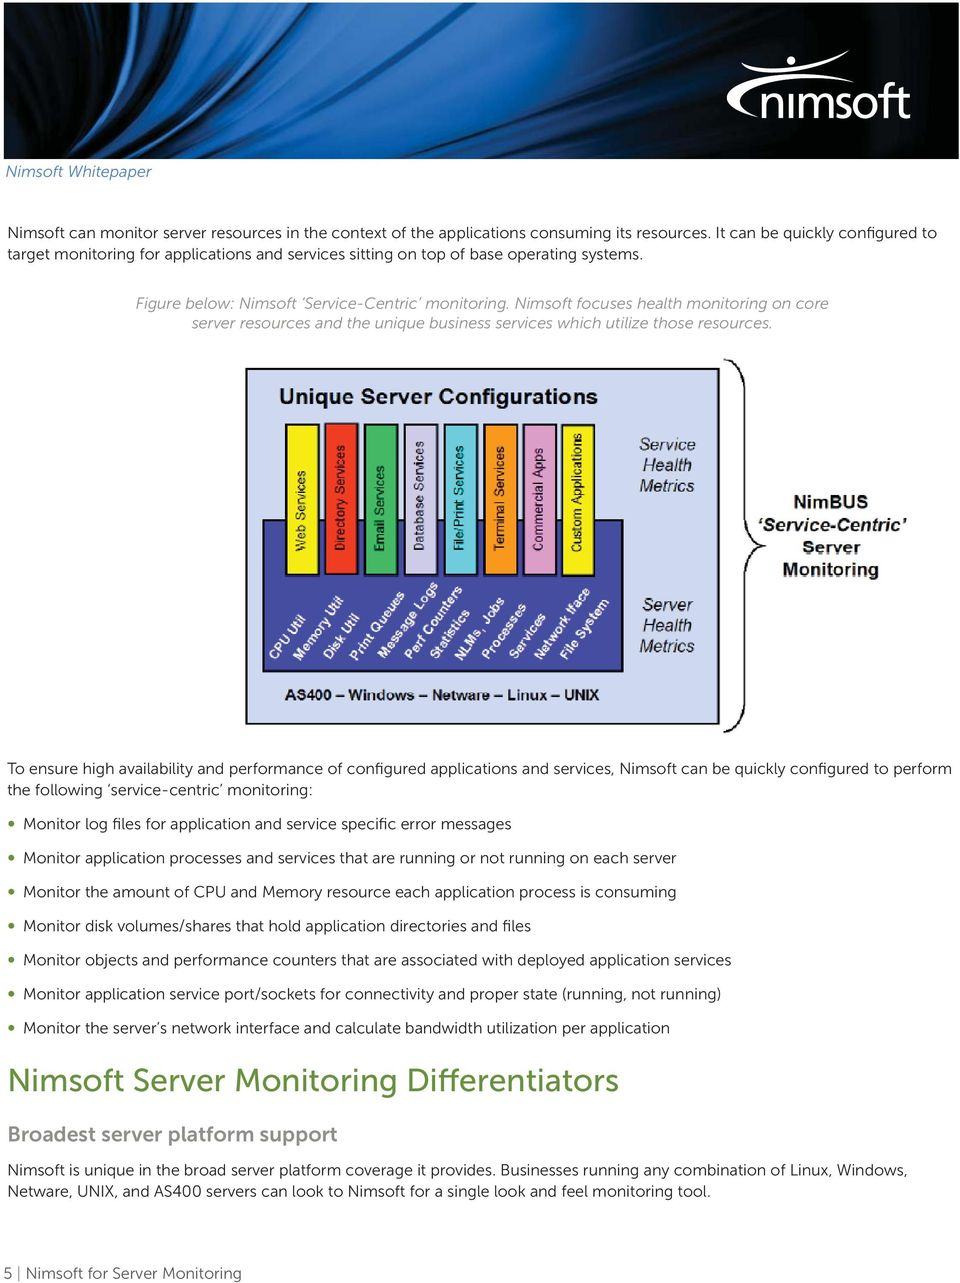 Nimsft fcuses health mnitring n cre server resurces and the unique business services which utilize thse resurces.